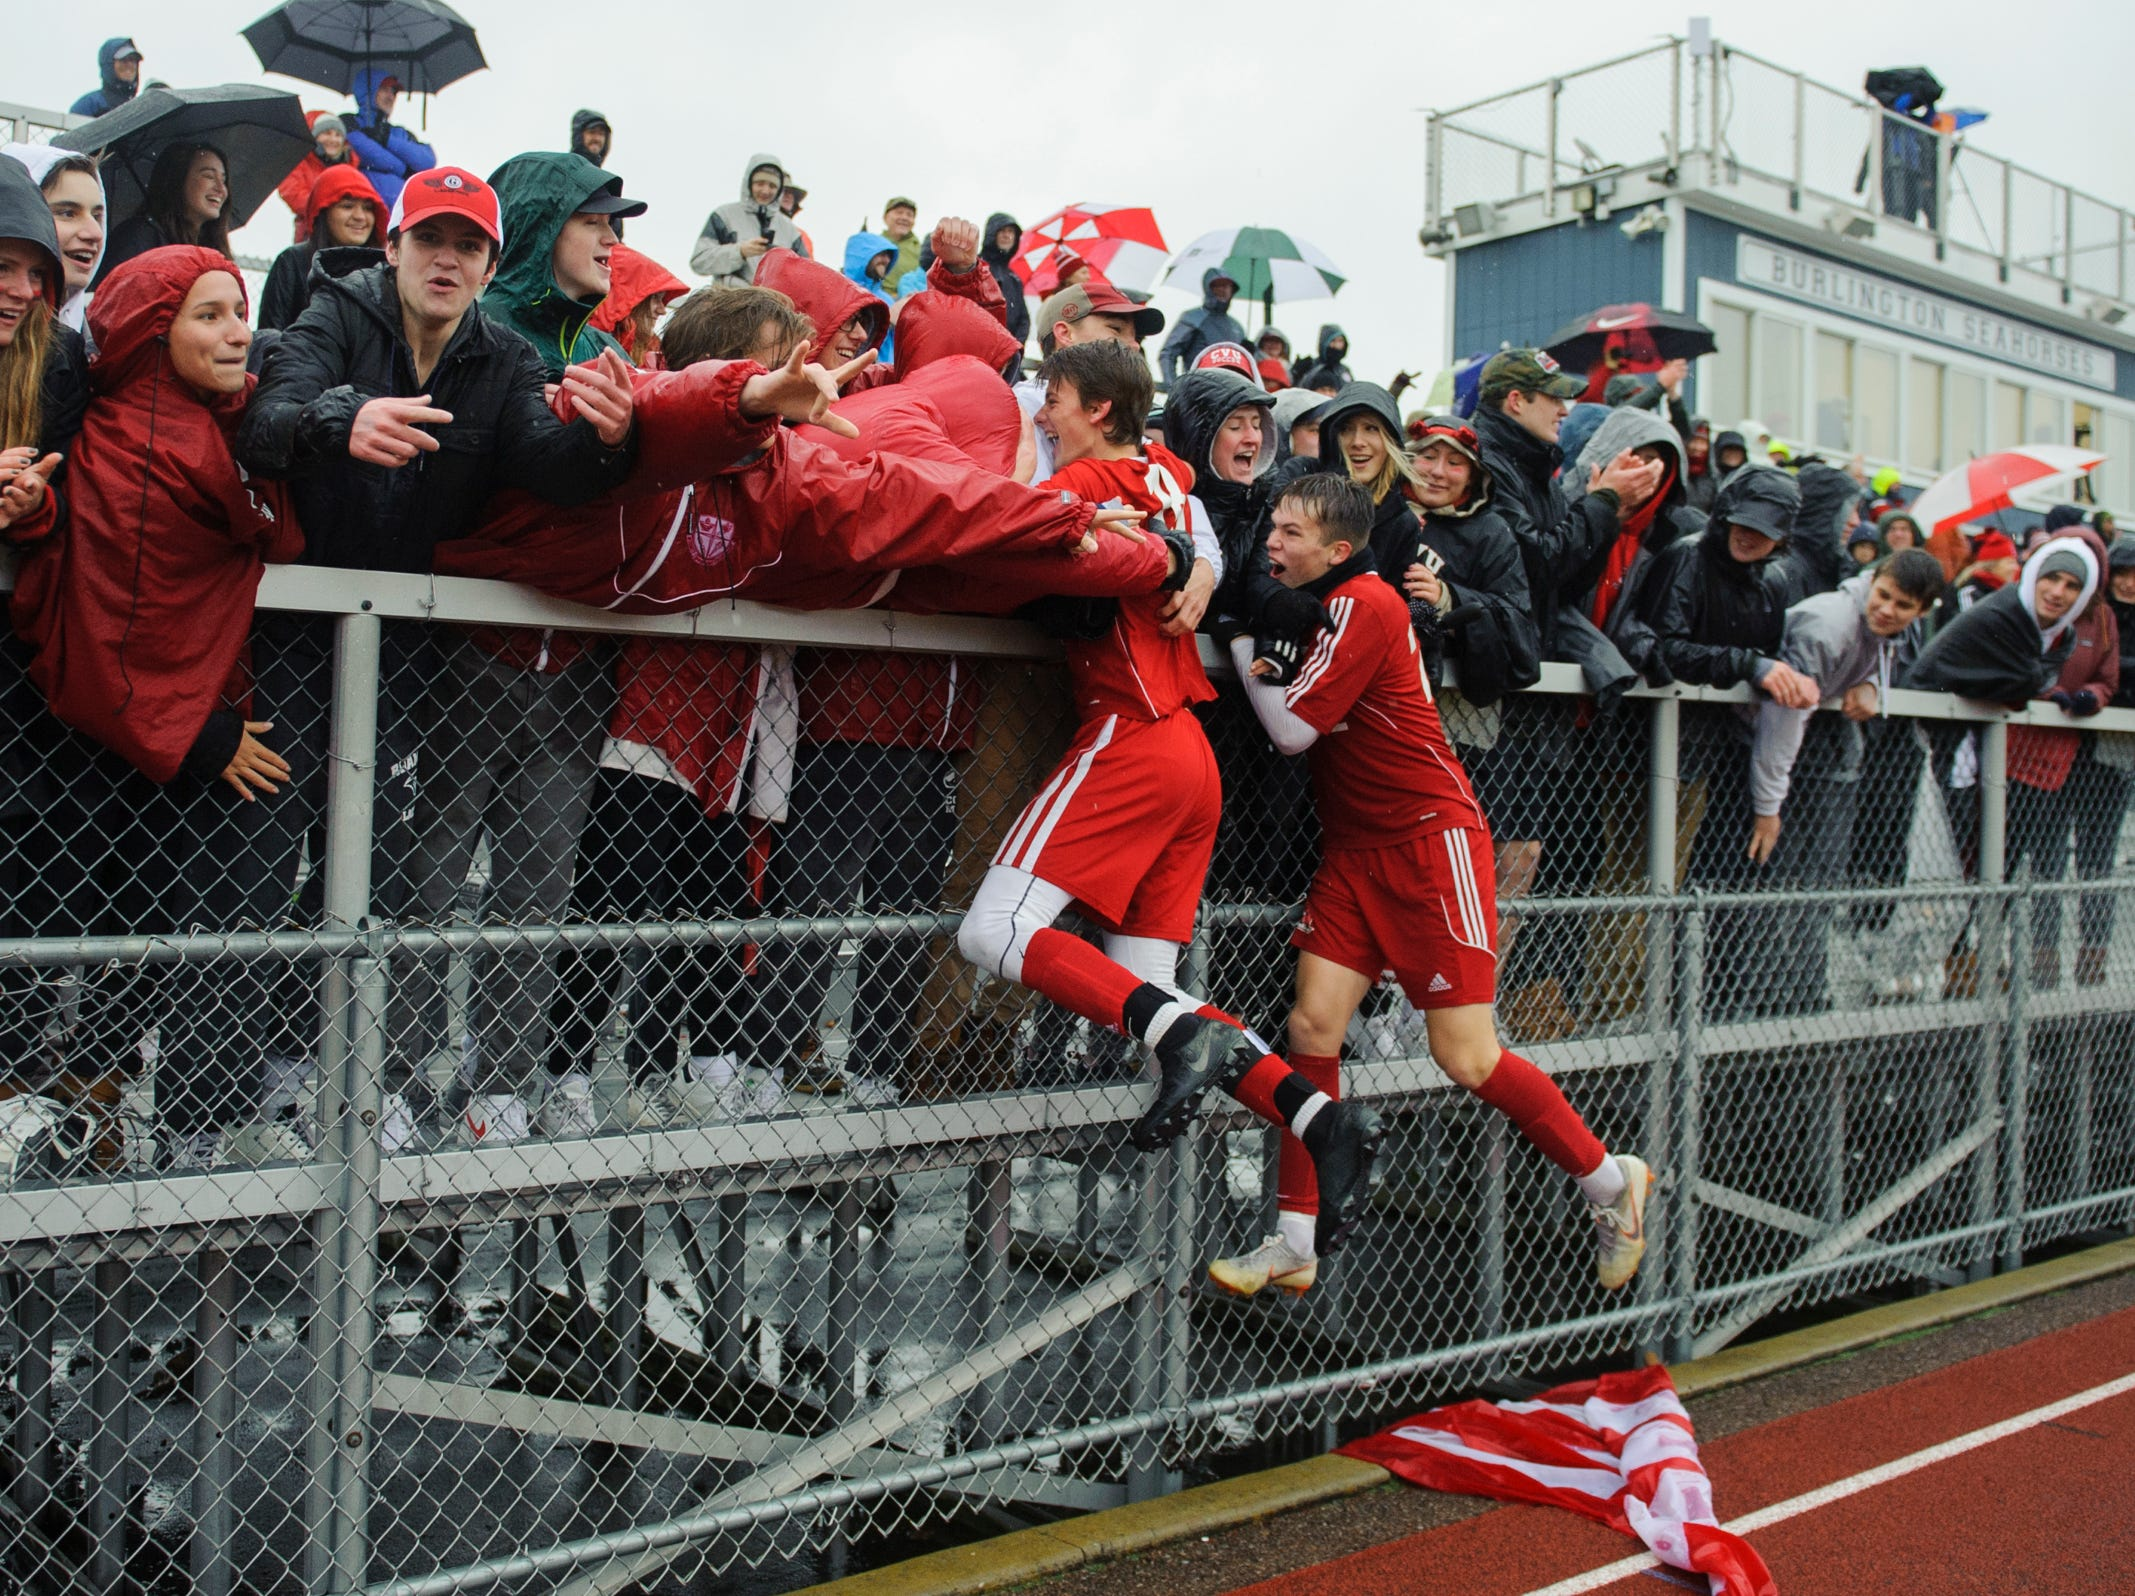 CVU celebrates with the fans during the Division I boys soccer championship game between the St. Johnsbury Hilltoppers and the Champlain Valley Union Redhawks at Buck Hard Field on Saturday morning November 3, 2018 in Burlington.